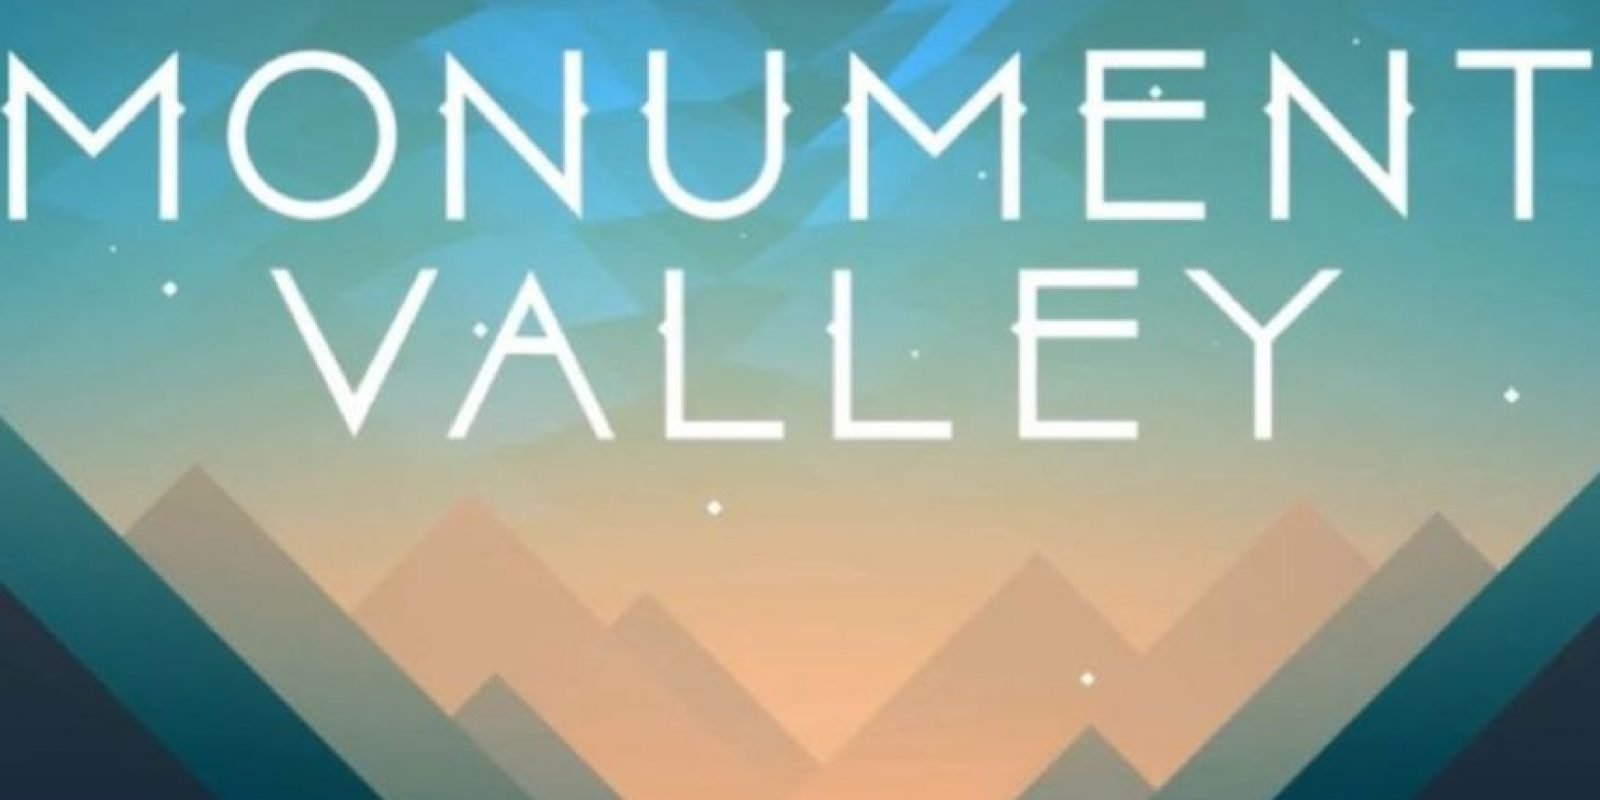 """Monument Valley"" está disponible para iOS, Android y Kindle Fire. Foto: ustwo"